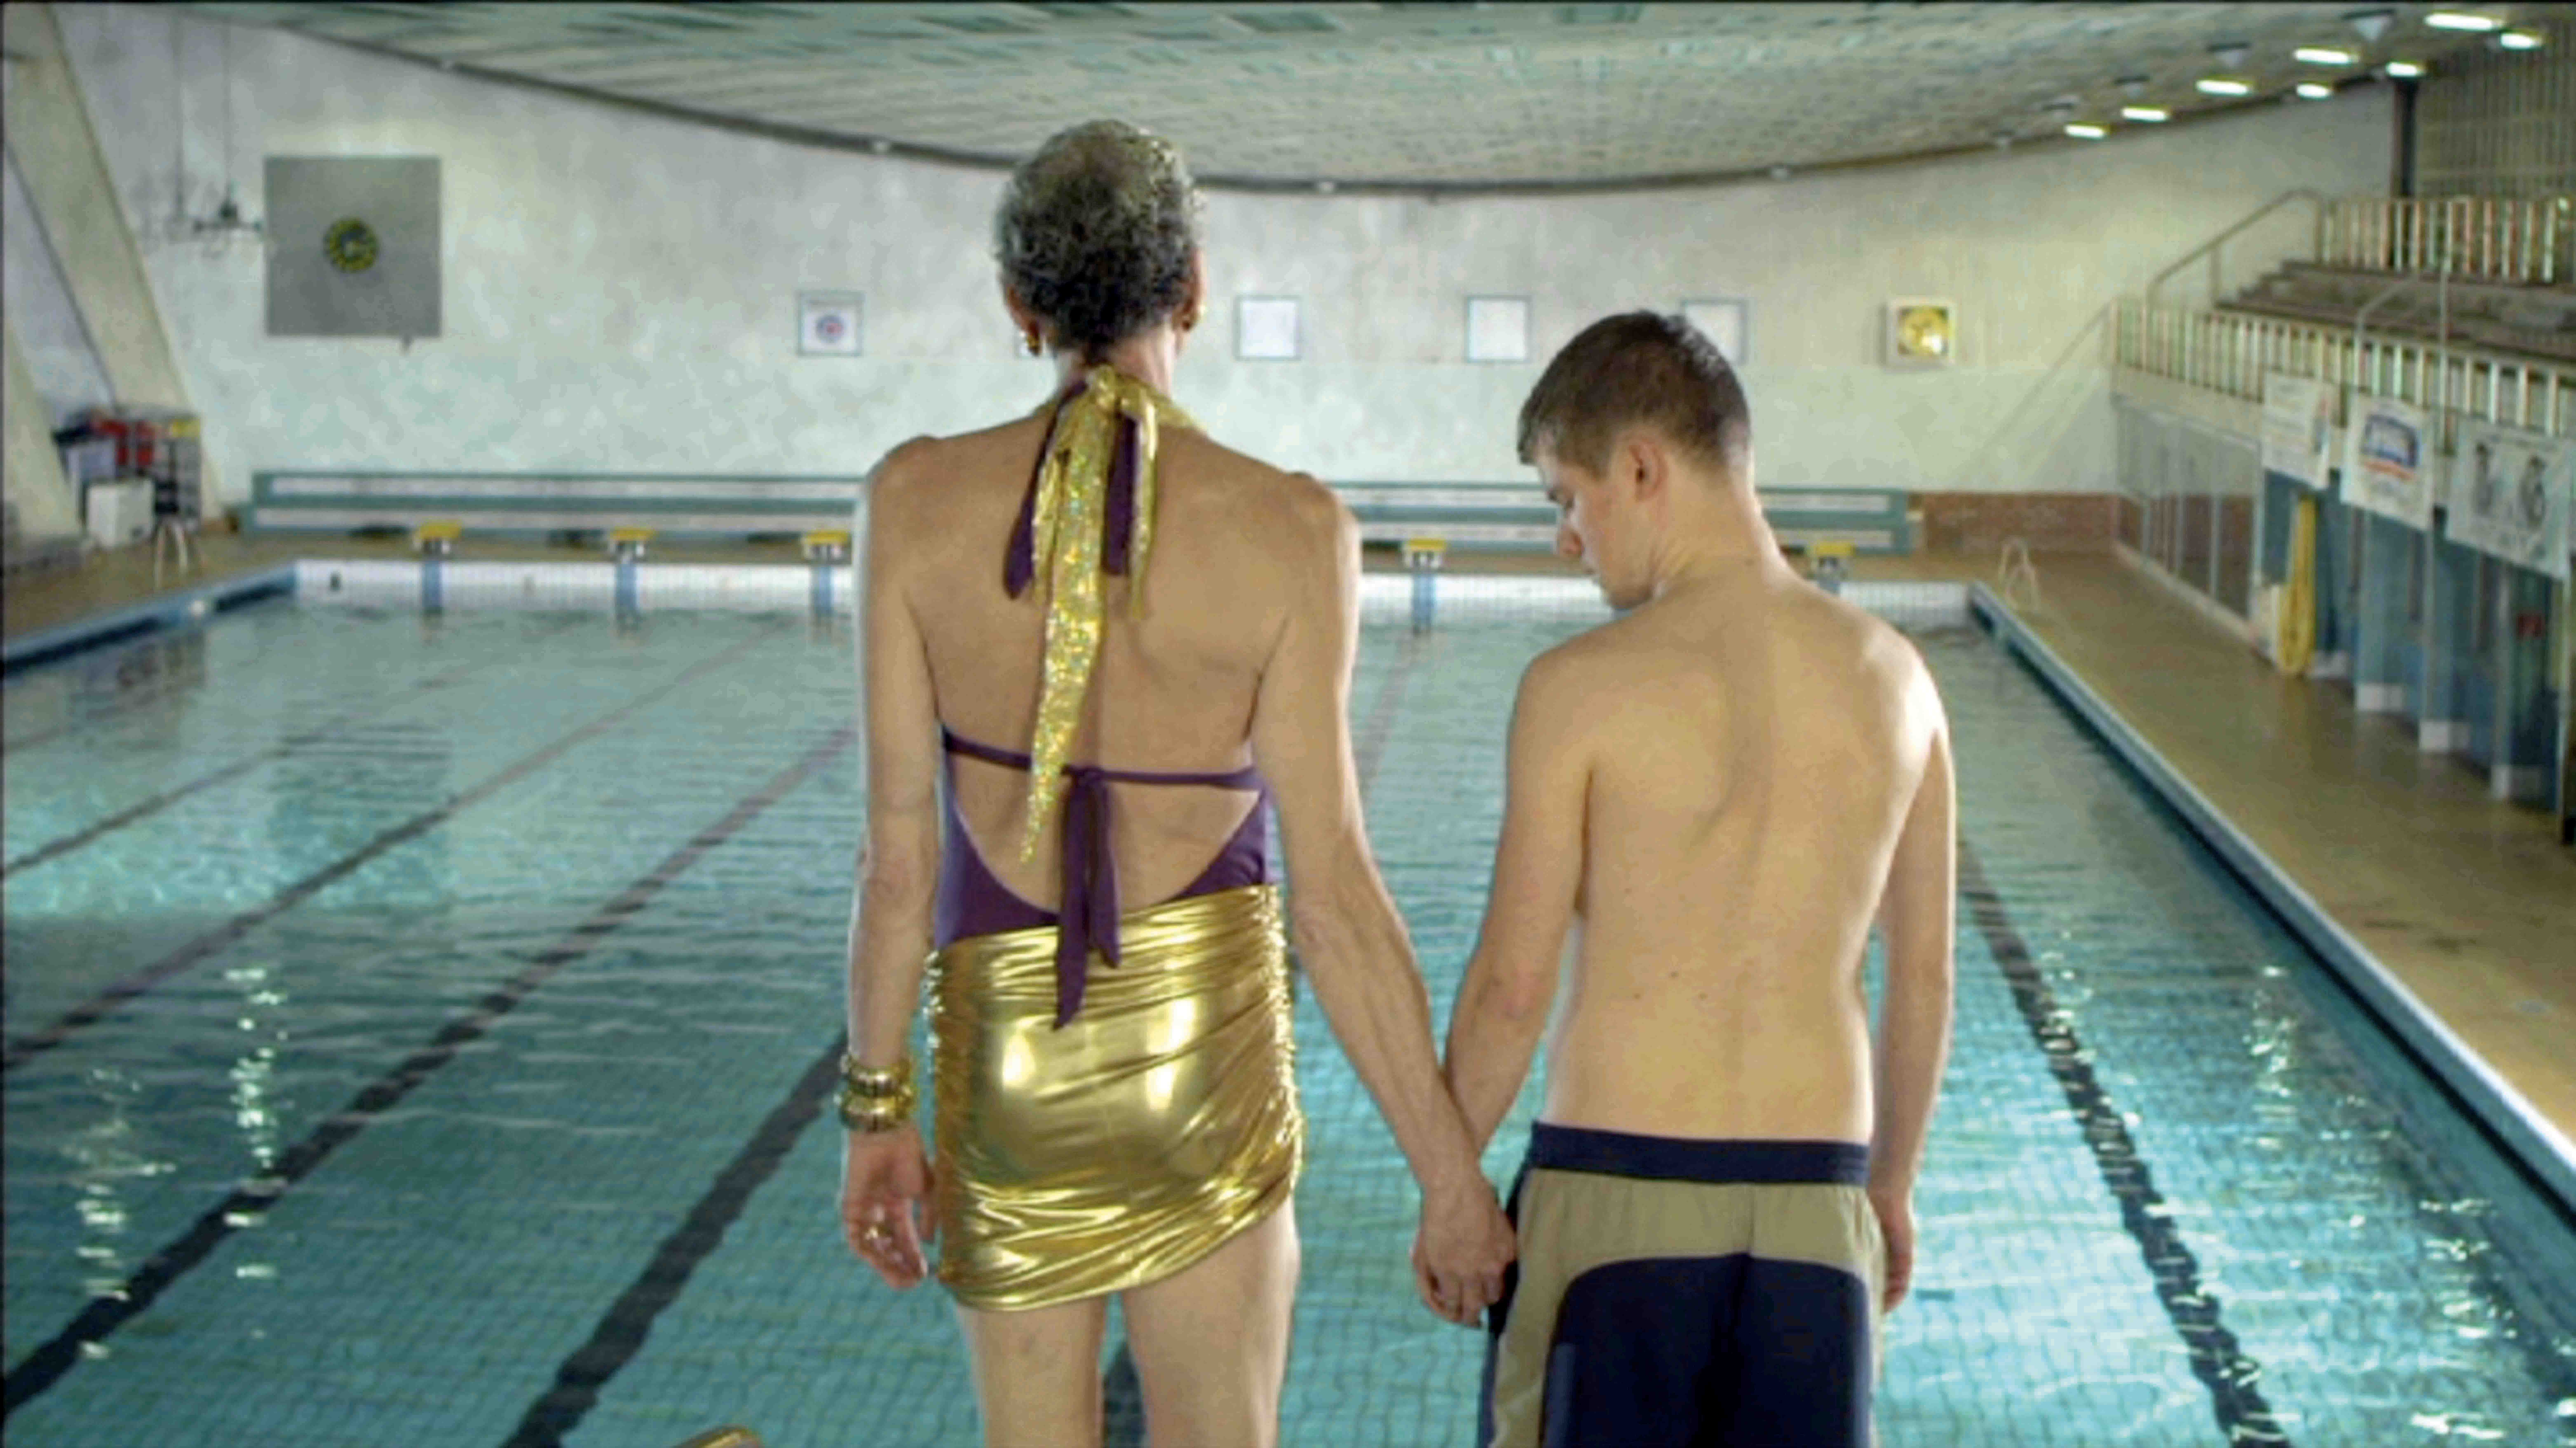 Two men hold hands at the dge of a swimming pool. One is considerably older than the other.